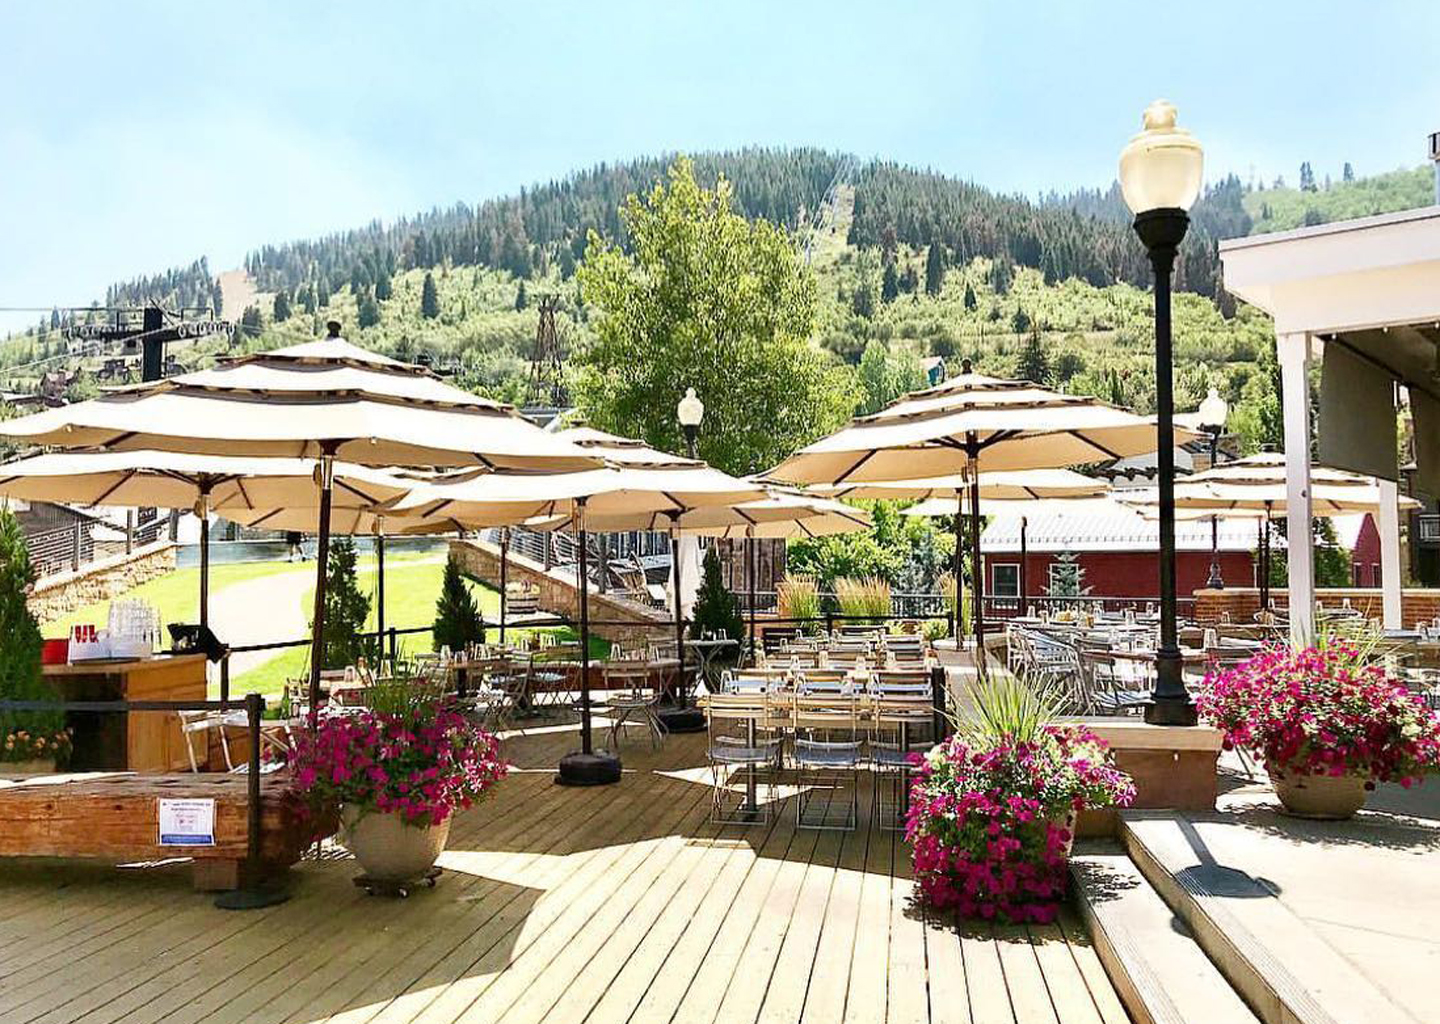 The Outdoor Patio at Bridge Cafe During Summer in Park City, Overlooking The Lifts